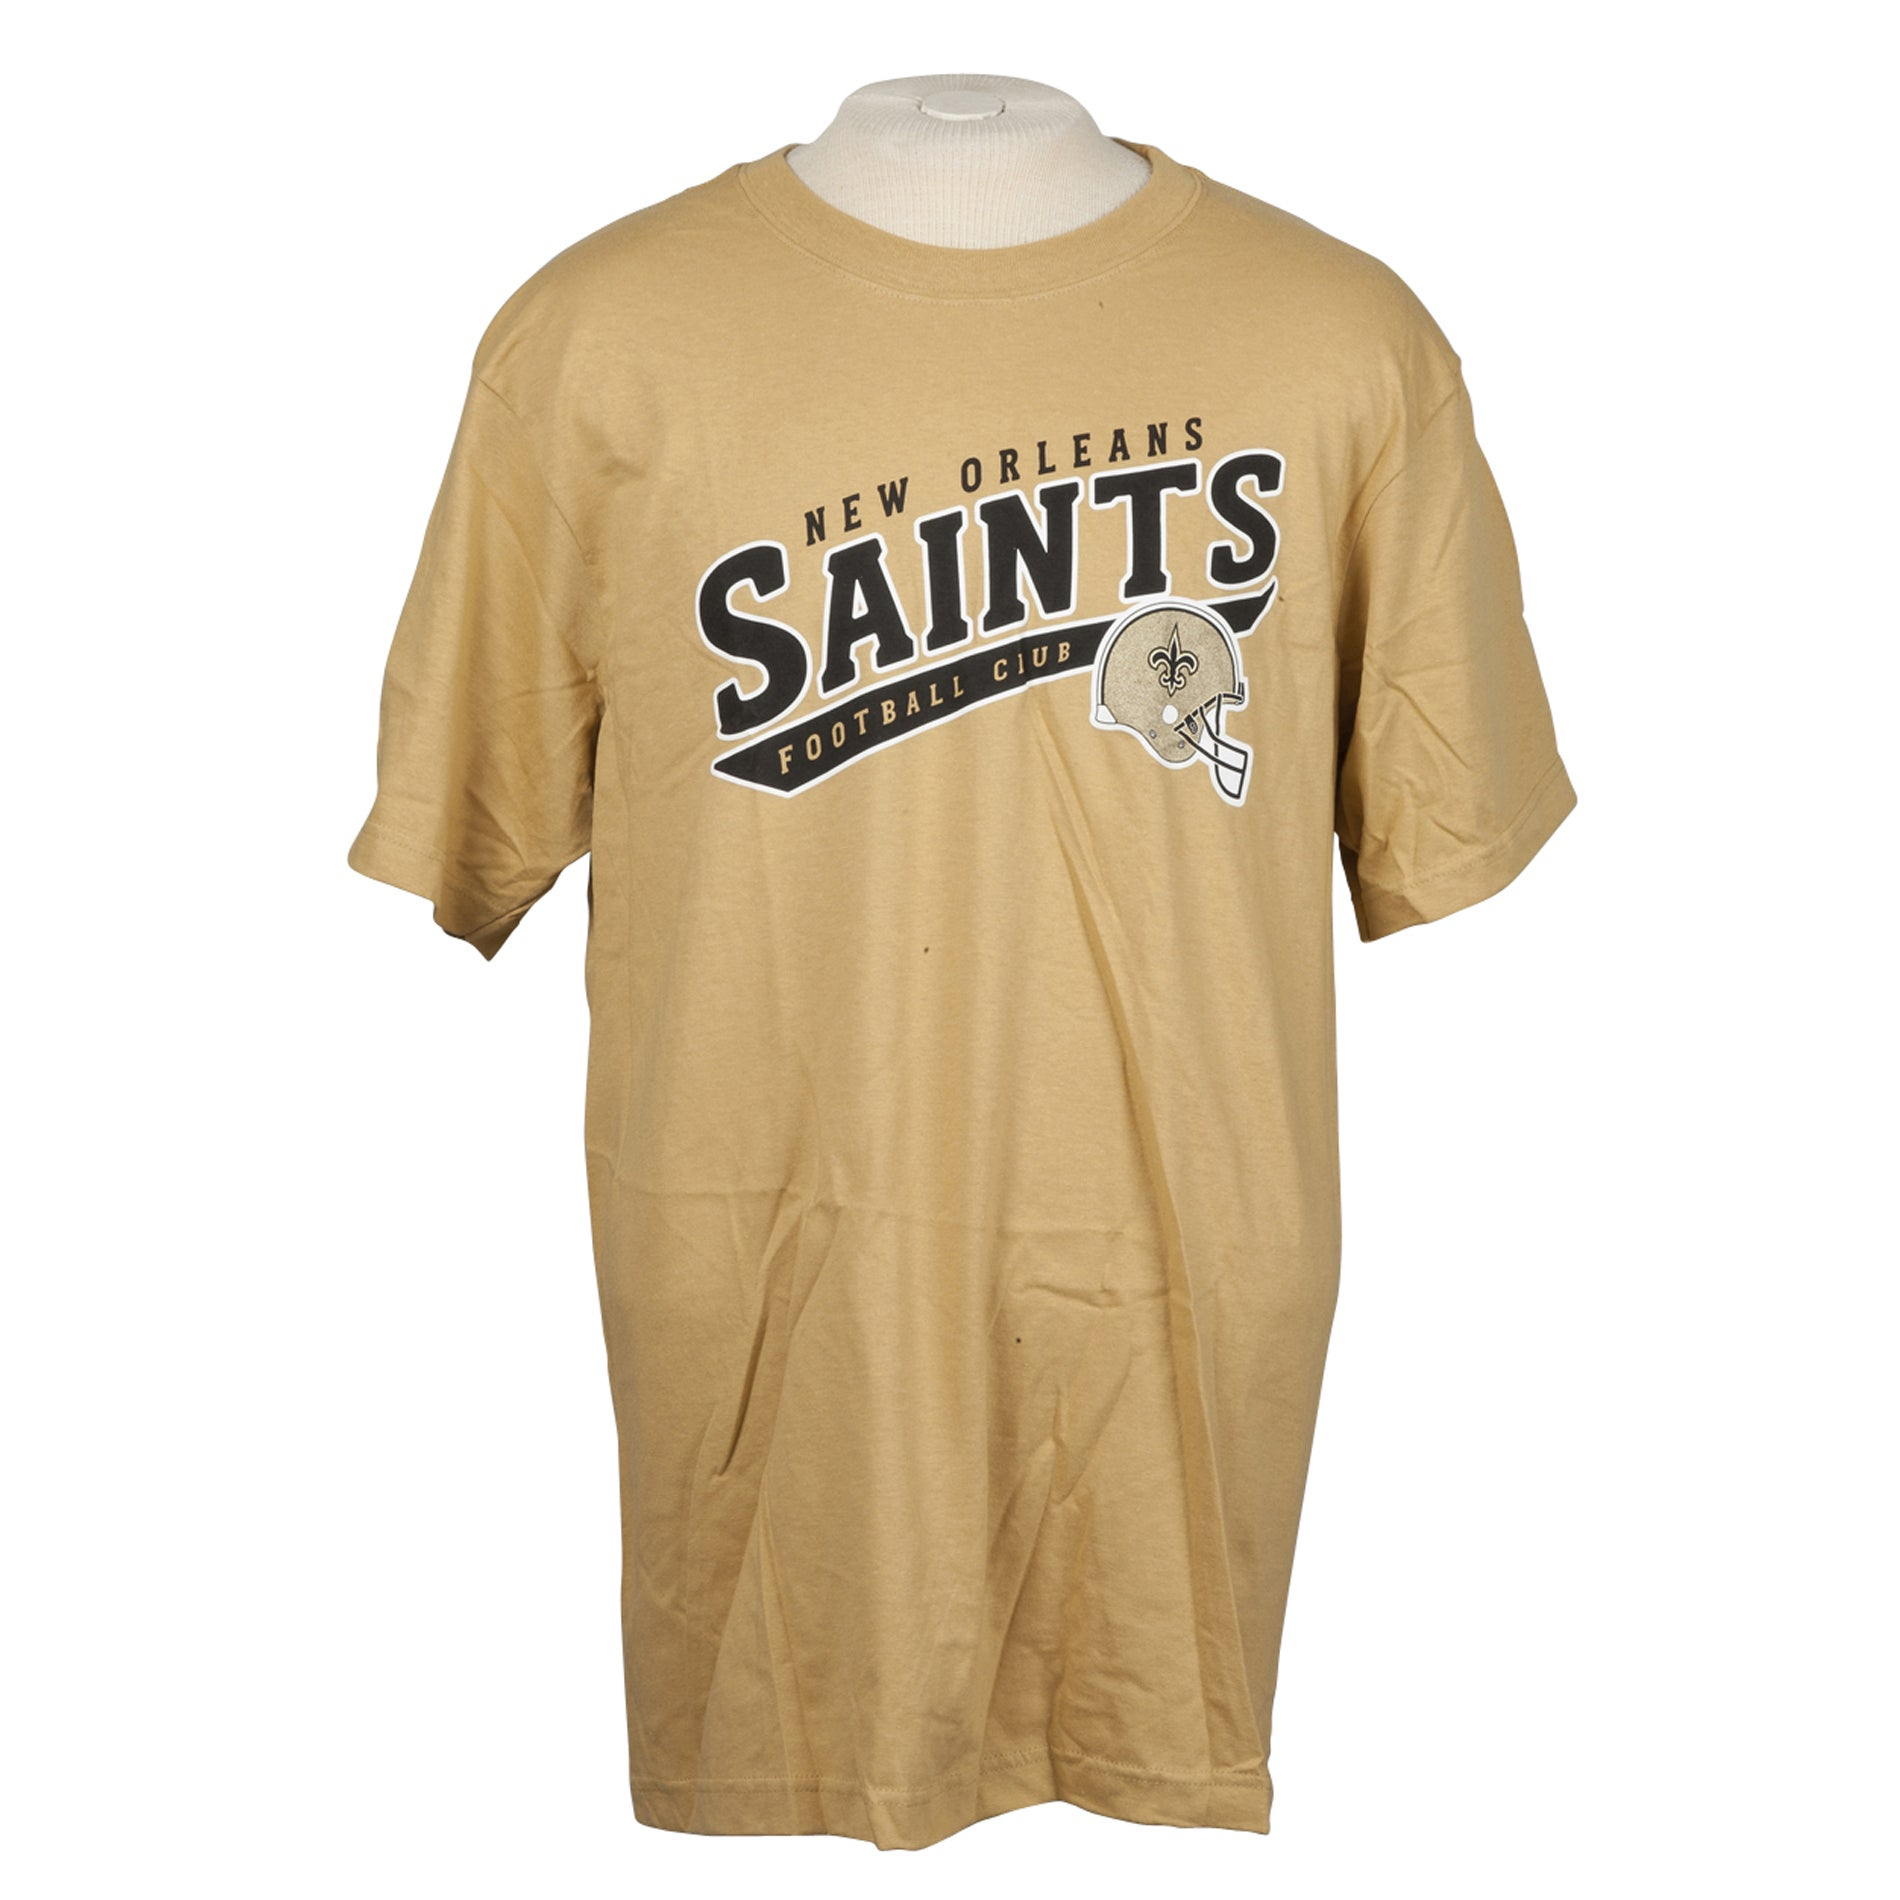 Reebok New Orleans Saints Tan Team T-shirt